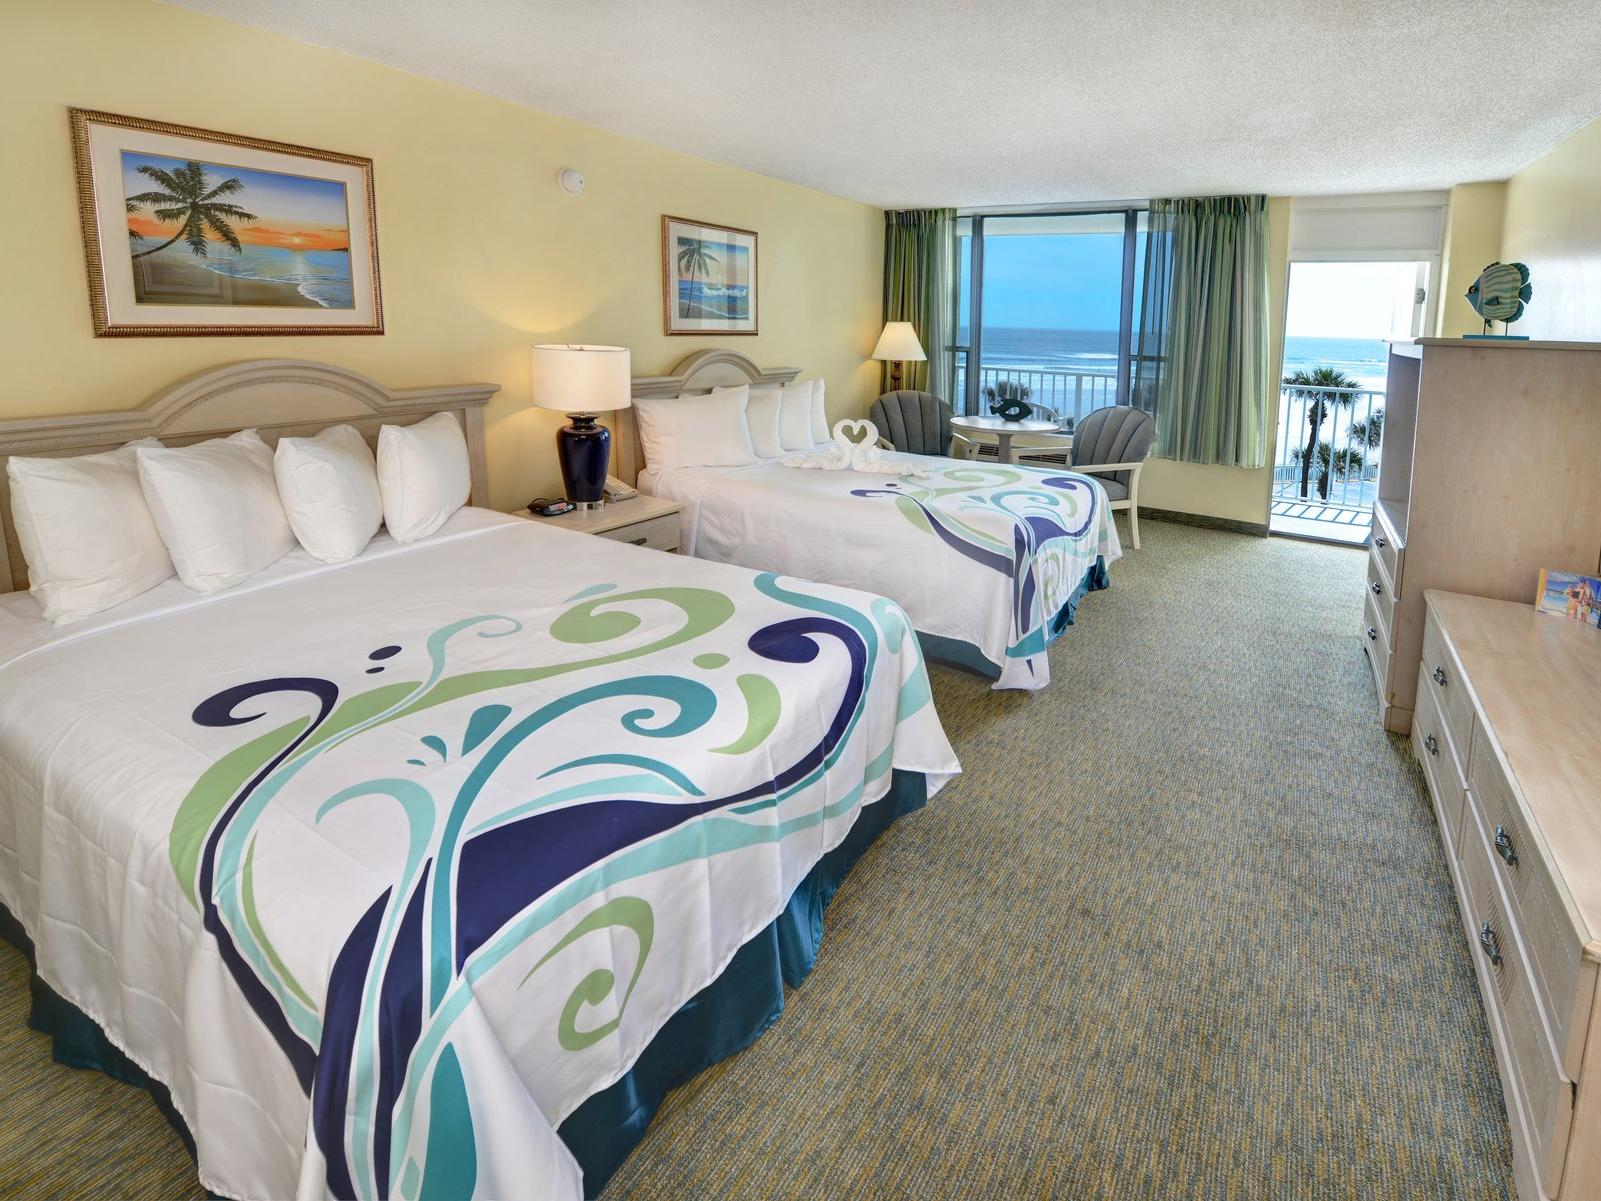 Hotel room with two Queen beds and ocean view.